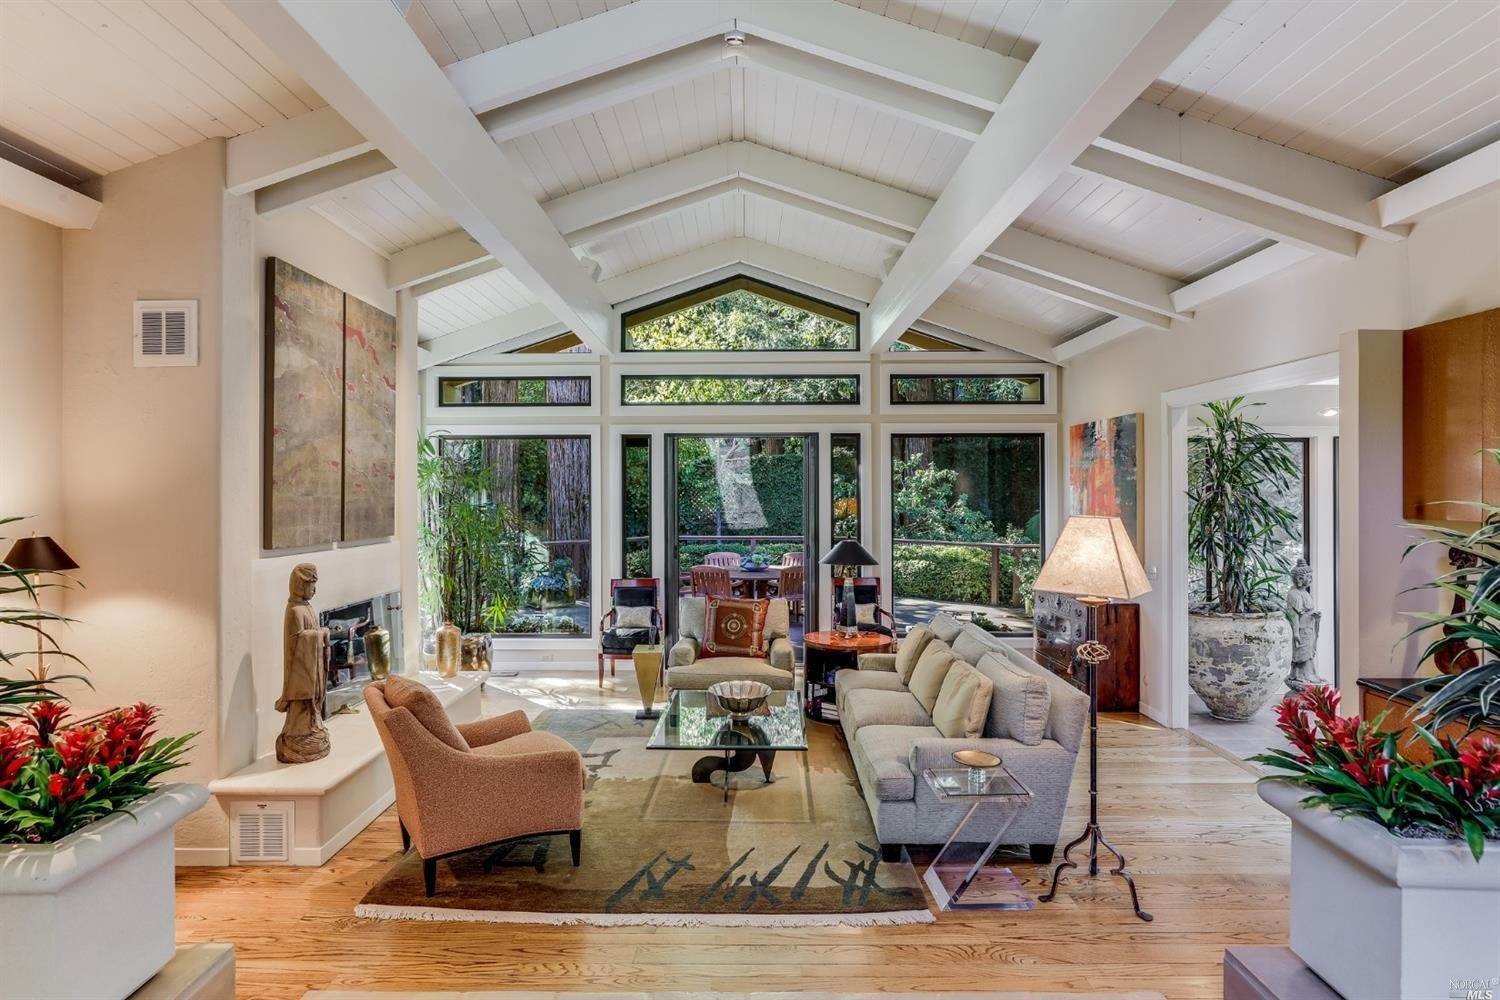 Single Family Homes for Sale at 215 LAUREL GROVE Avenue, Kentfield Kentfield, California 94904 United States